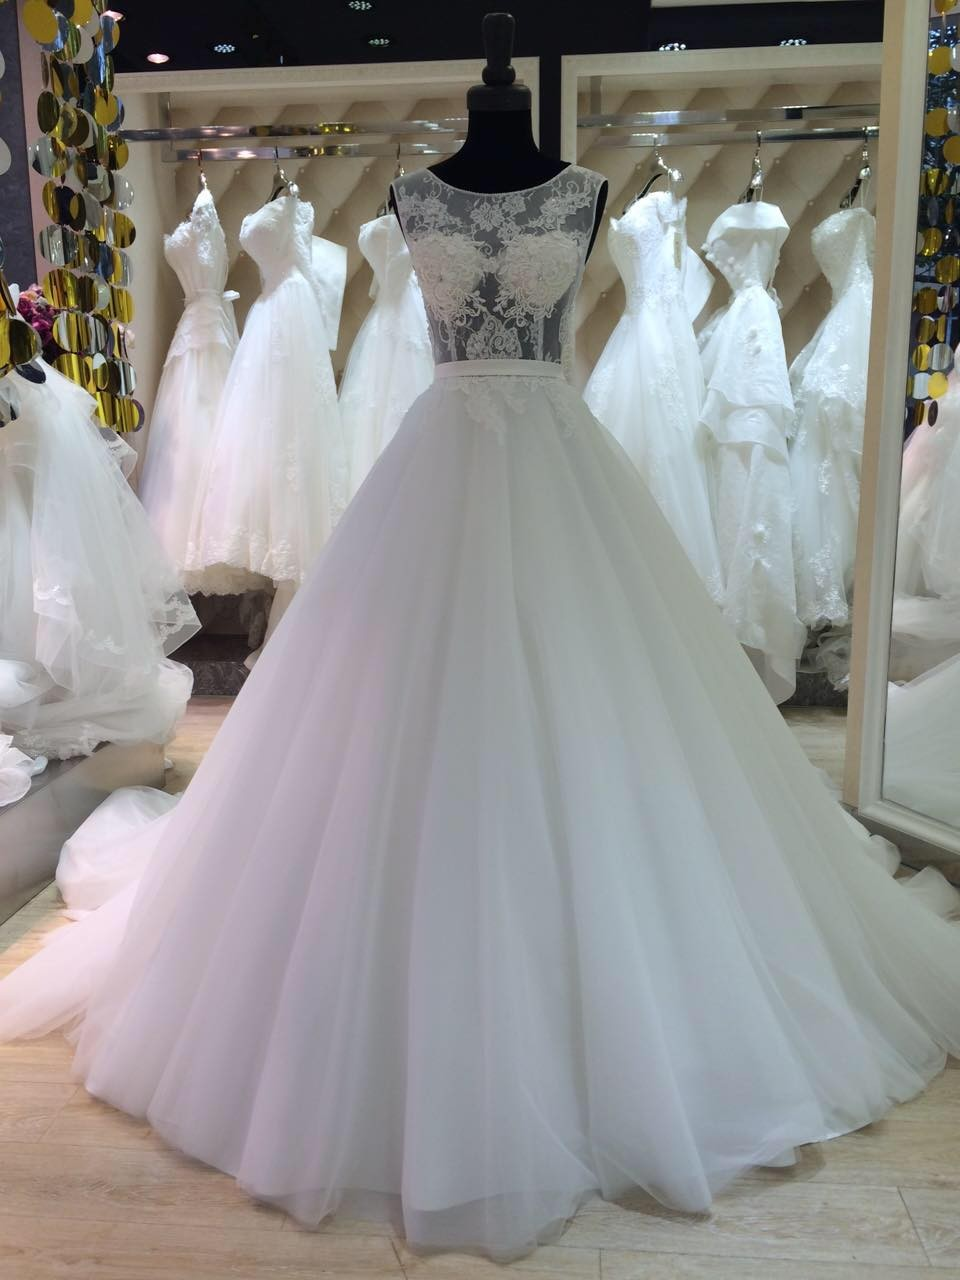 Wedding Dress Sales Utah : Real images islamic description of wedding dress sale